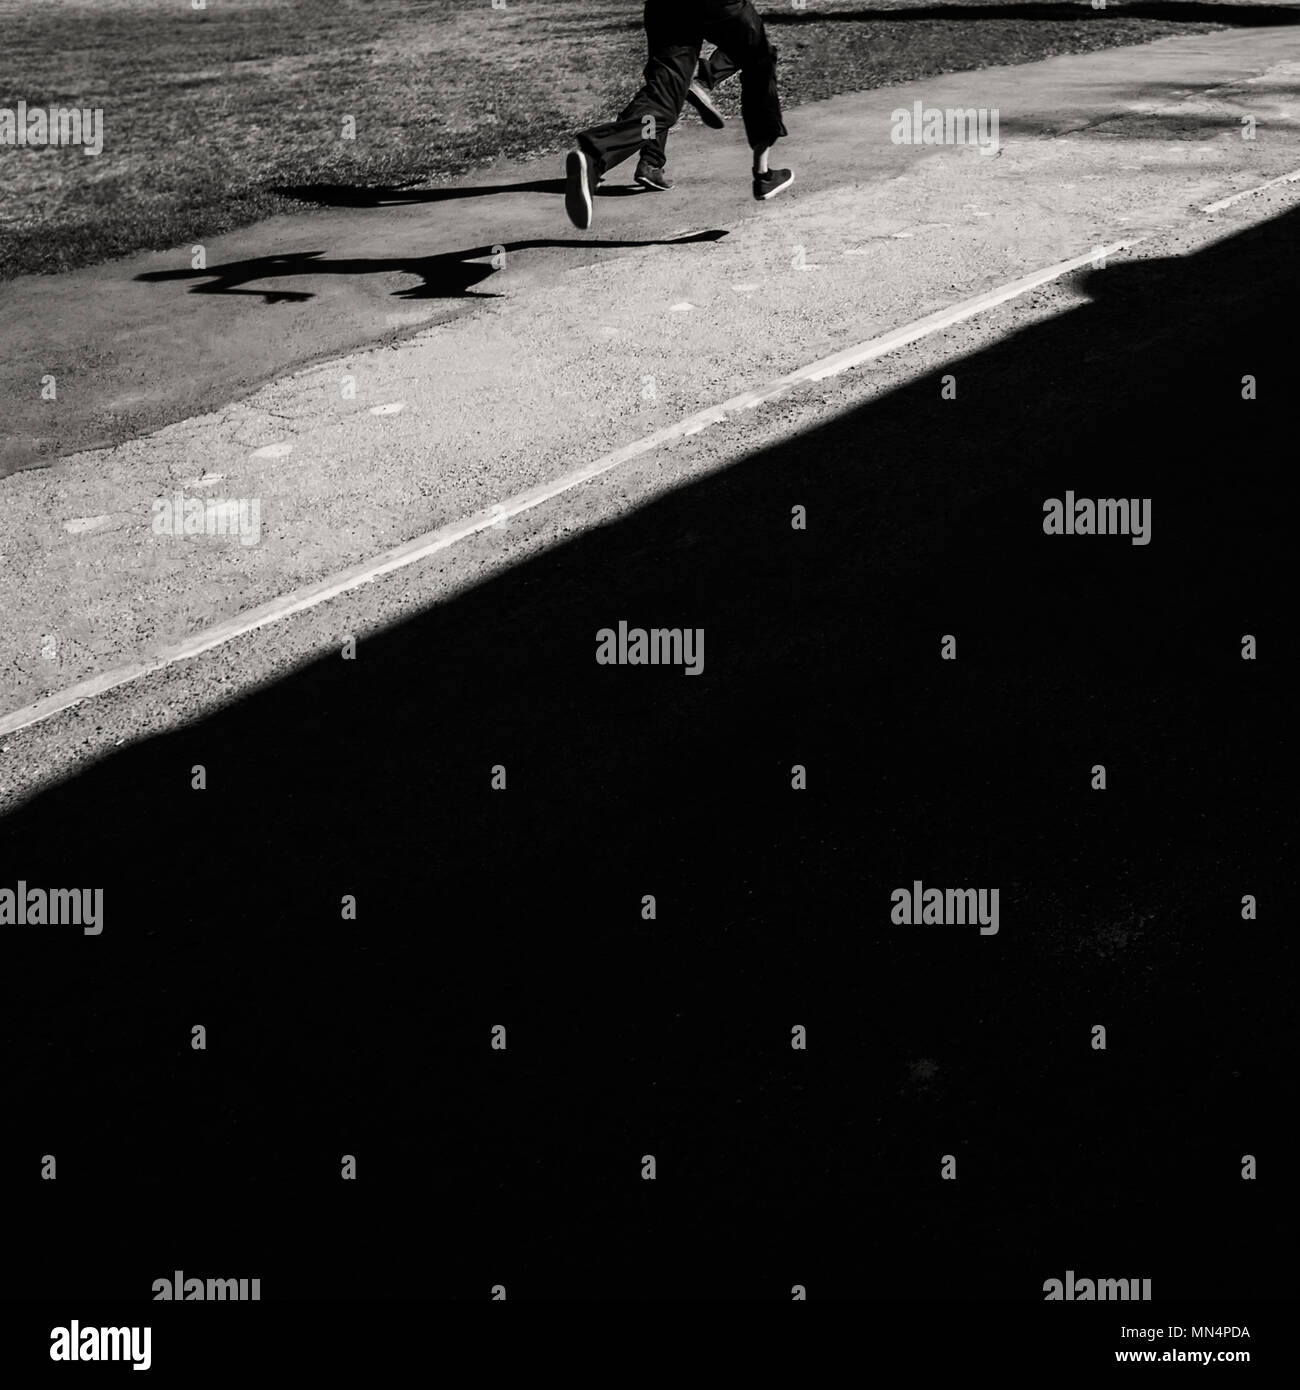 BLURRED DARK BACKGROUND. SHADOWS OF FIGURES AT ASPHALT OF RUNNING BOYS. - Stock Image